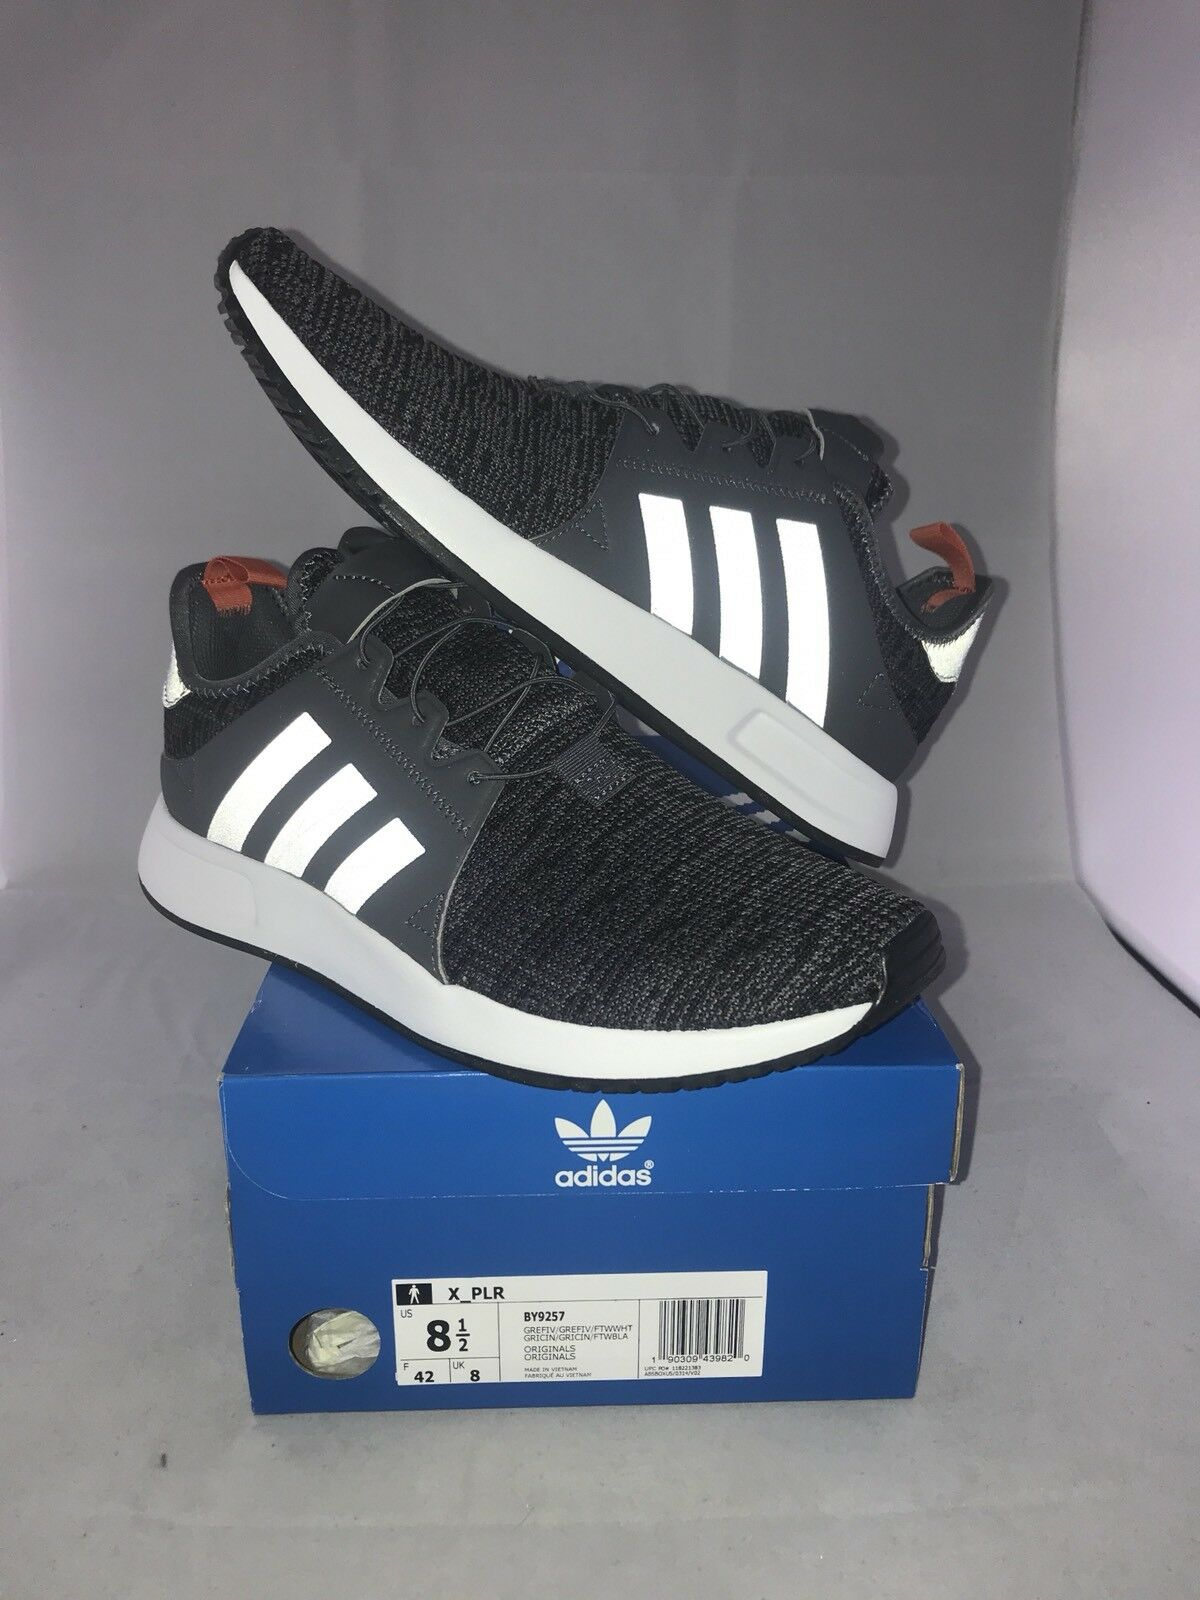 ADIDAS ORIGINALS X PLR SZ 8.5 GREY FIVE WHITE KNIT X_PLR BY9257